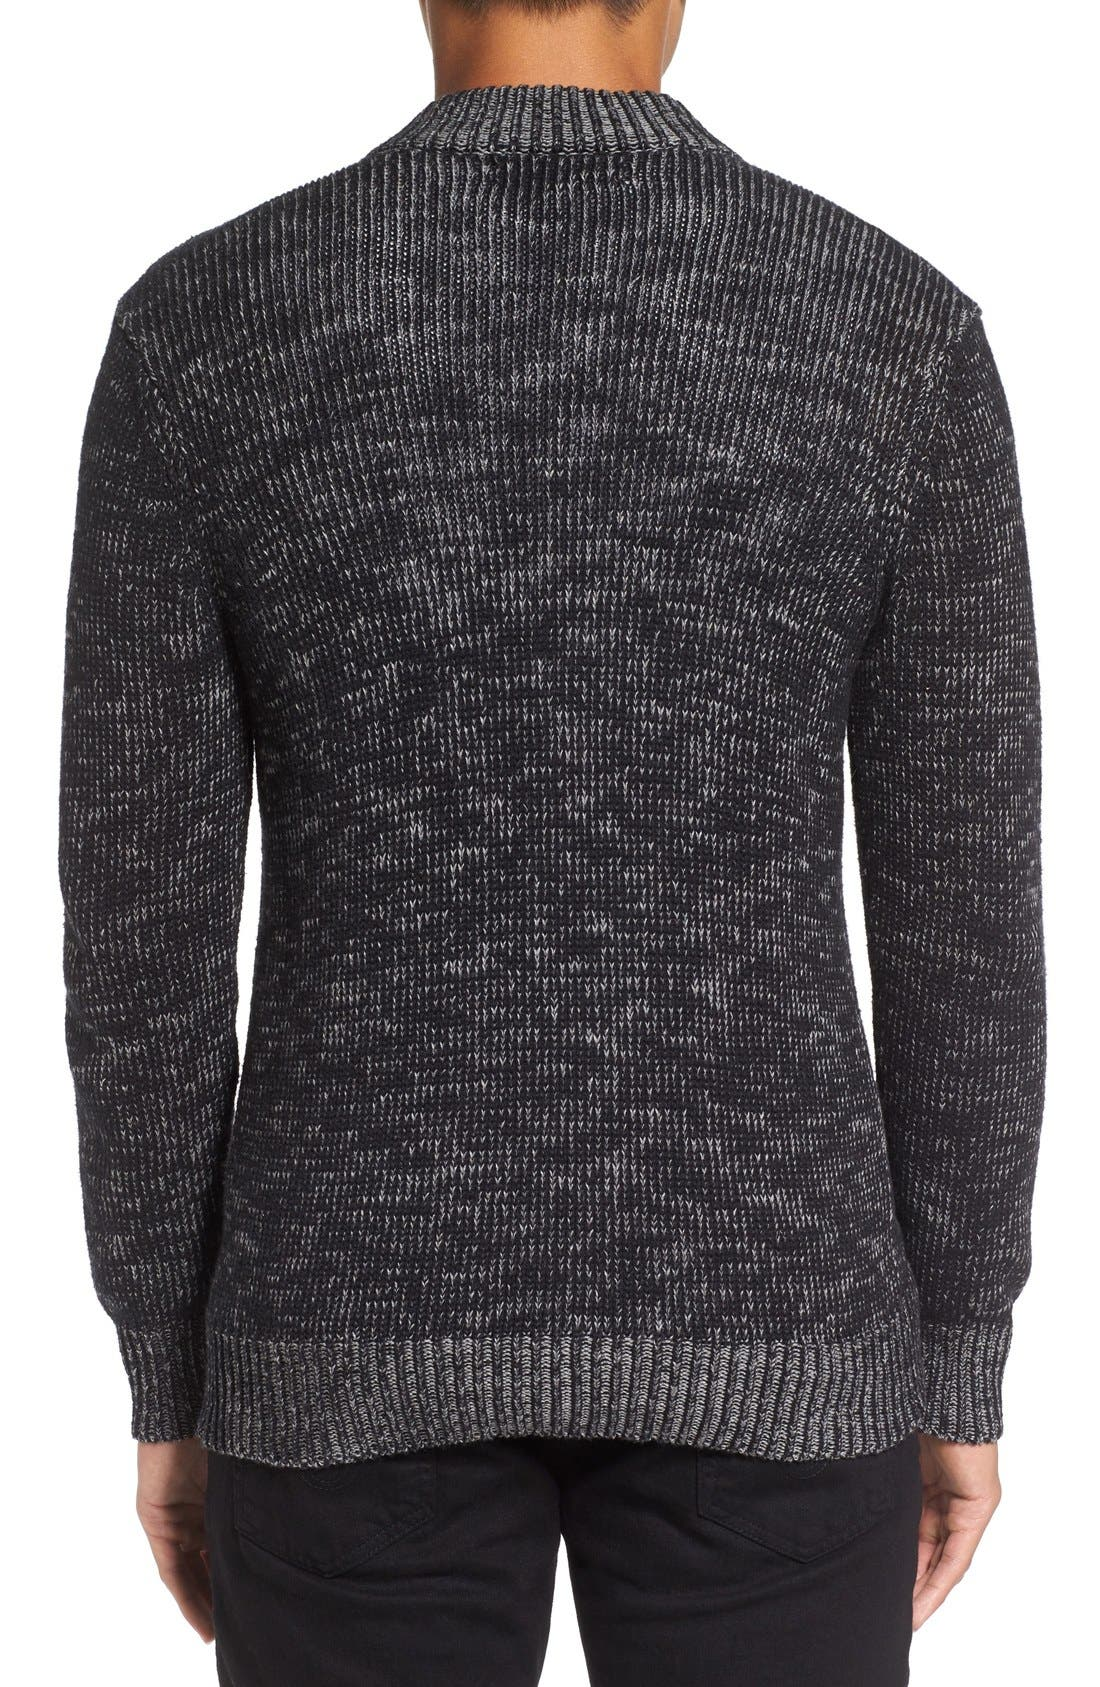 Two-Way Zip Mélange Sweater,                             Alternate thumbnail 2, color,                             Black/ Heather Grey